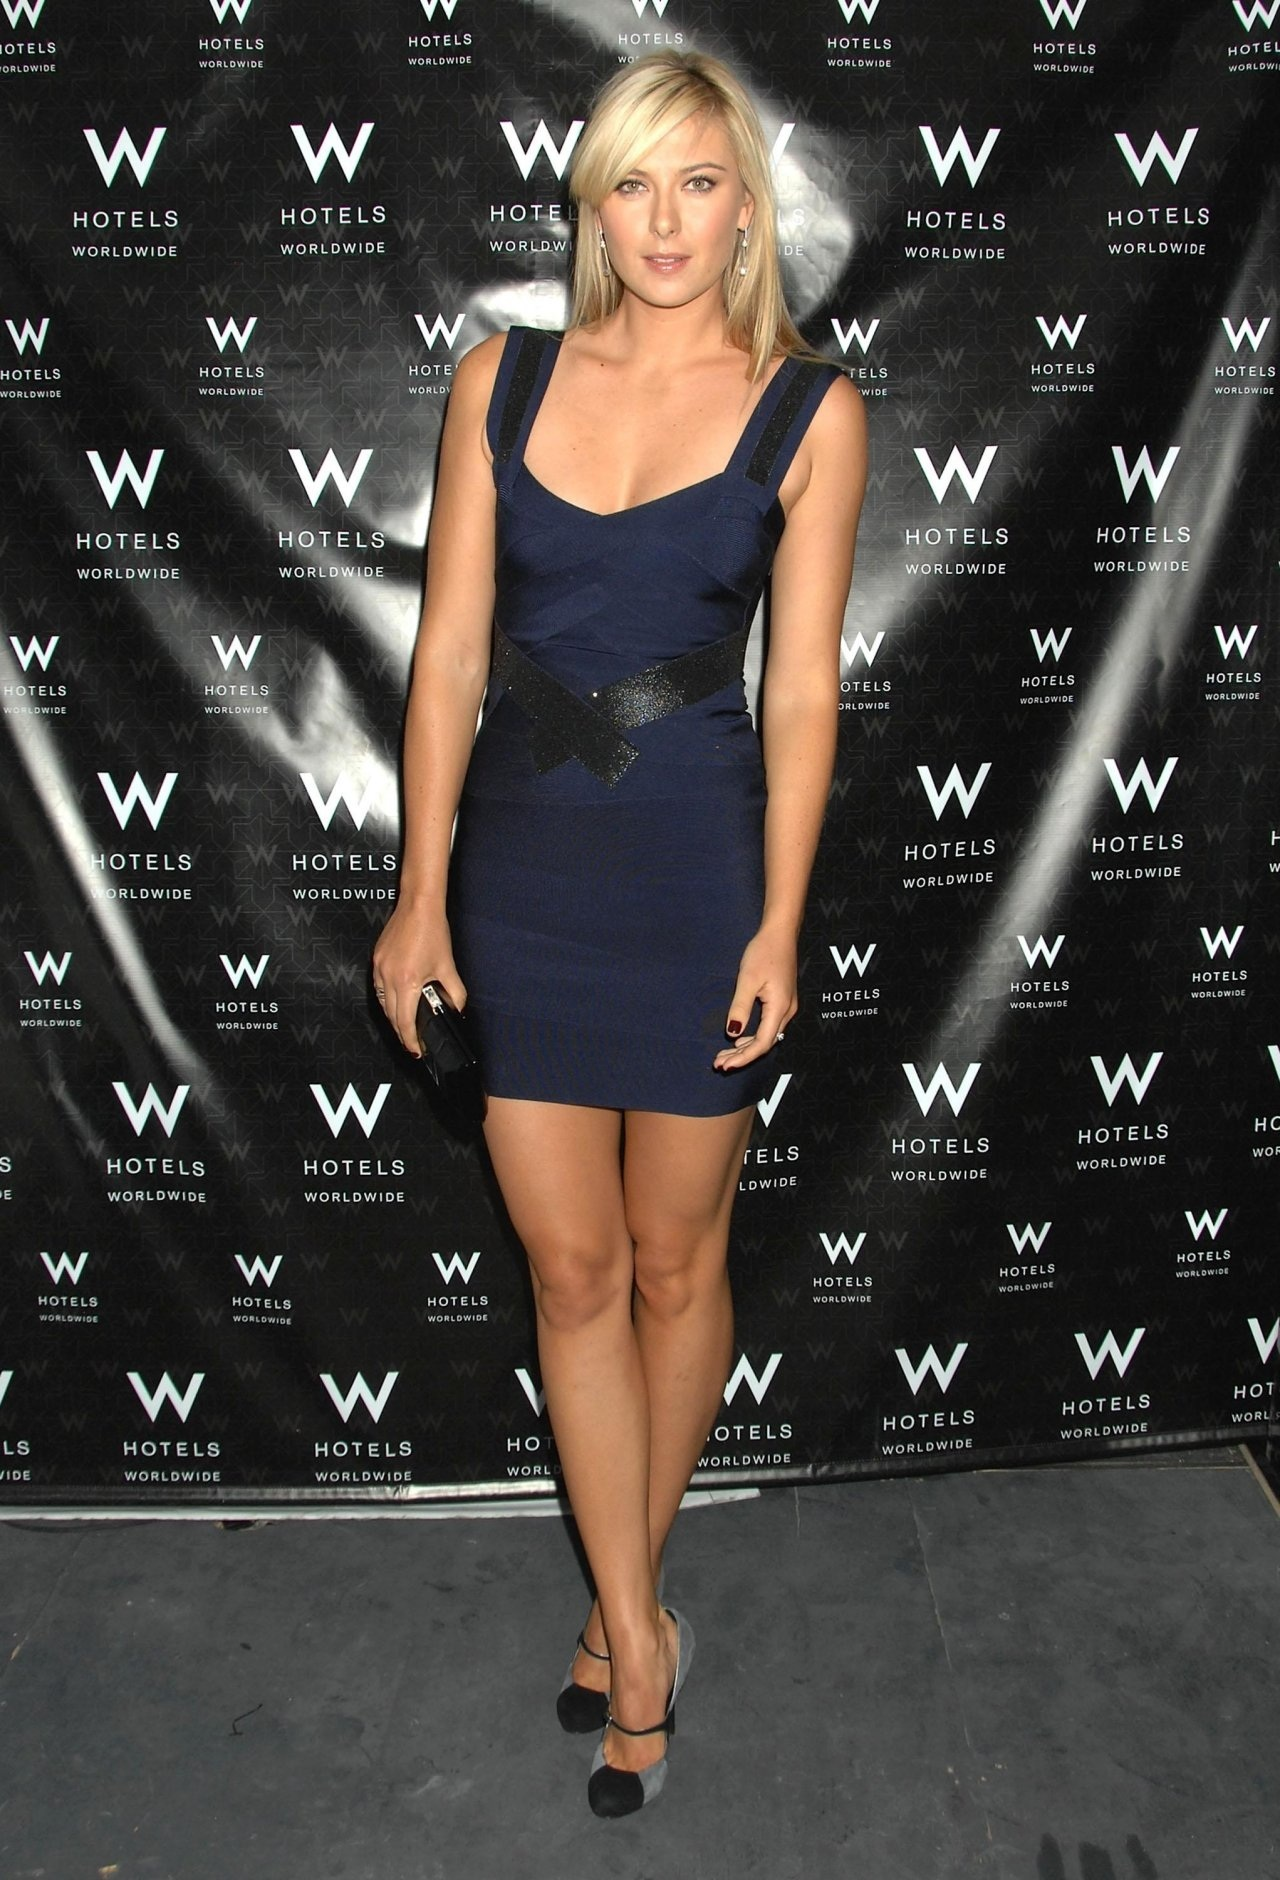 Maria Sharapova Height, Workout and Body Measurements